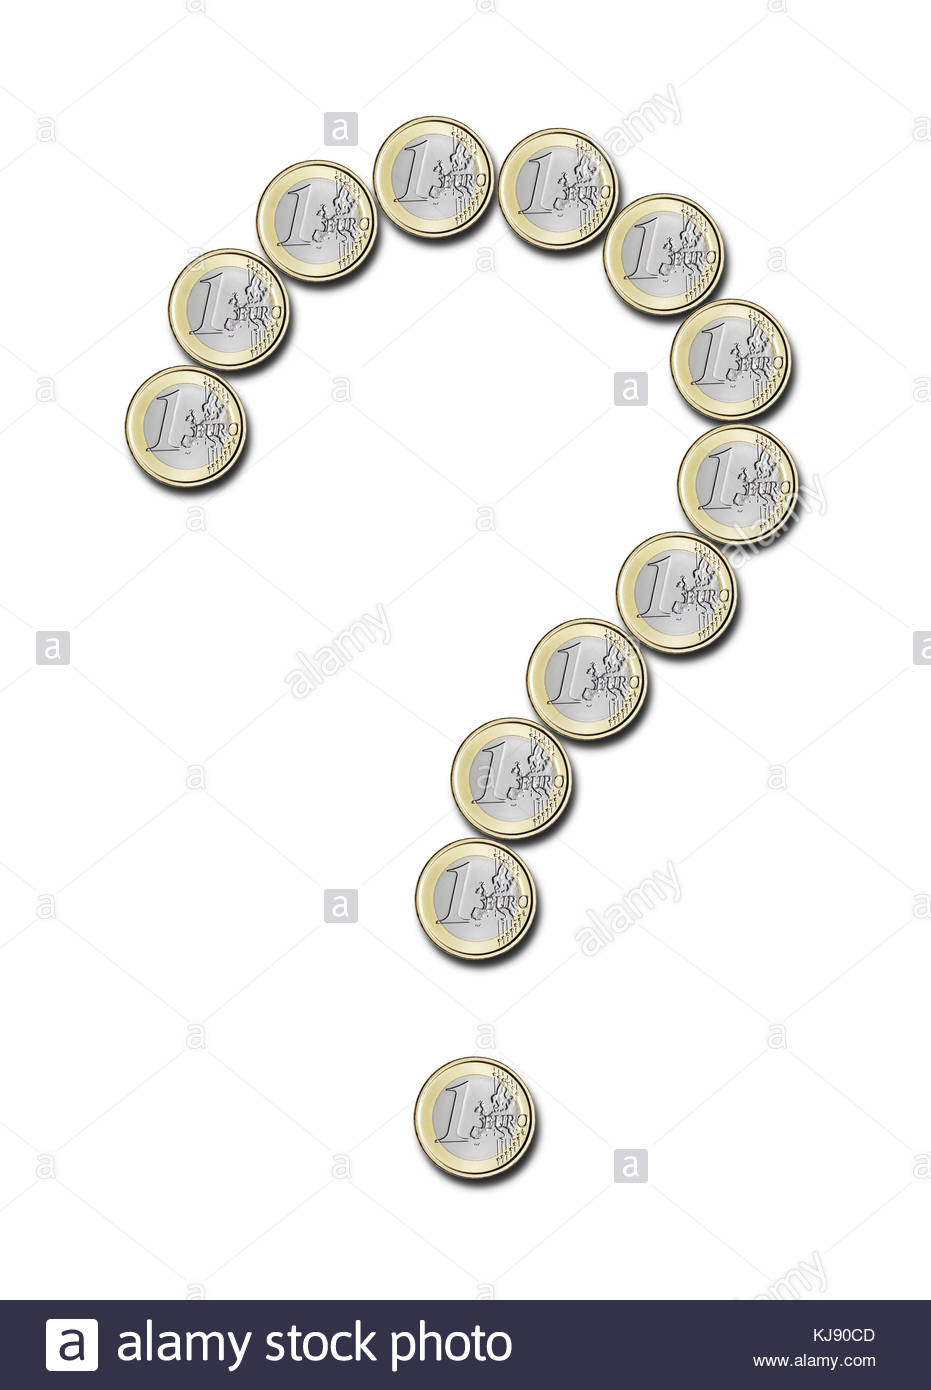 euro coins in the shape of question mark on white background - Stock Image